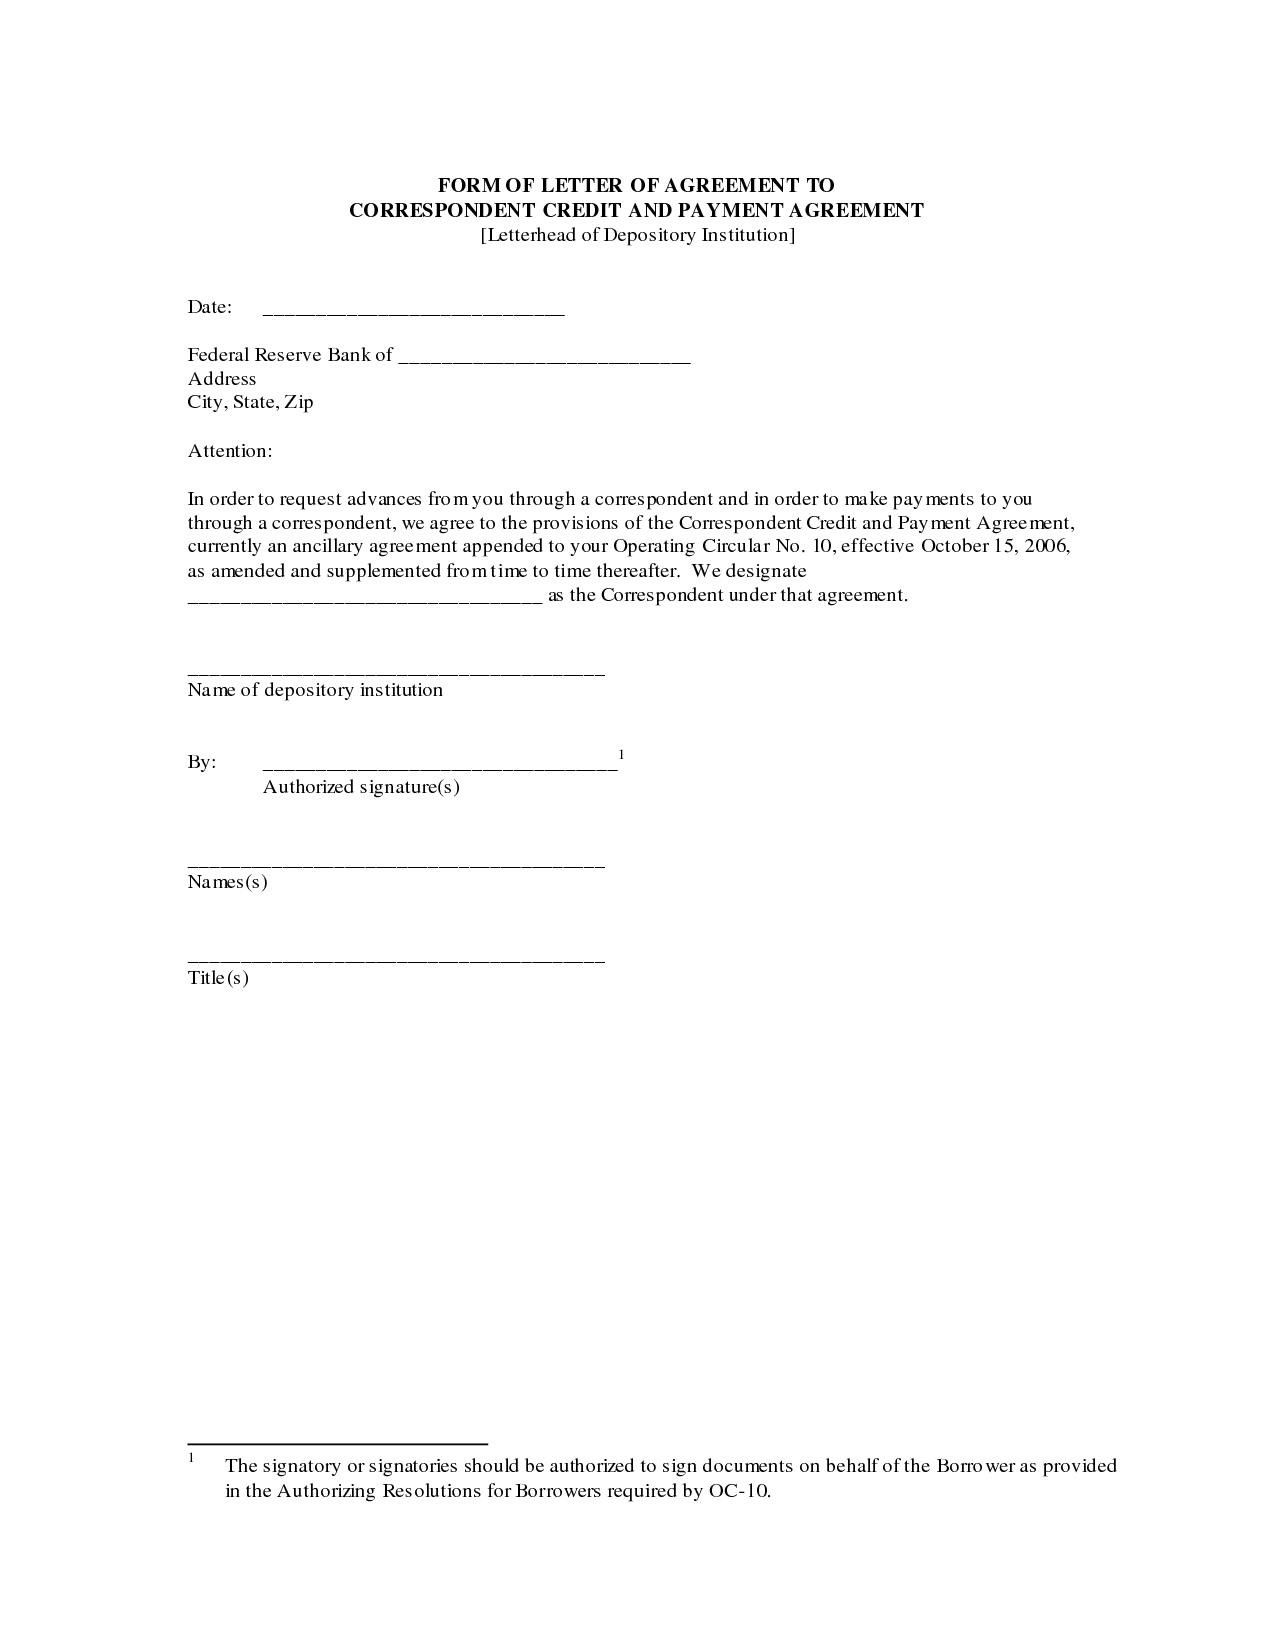 Payment Agreement Form Template | Besttemplates123 | Best Templates ...